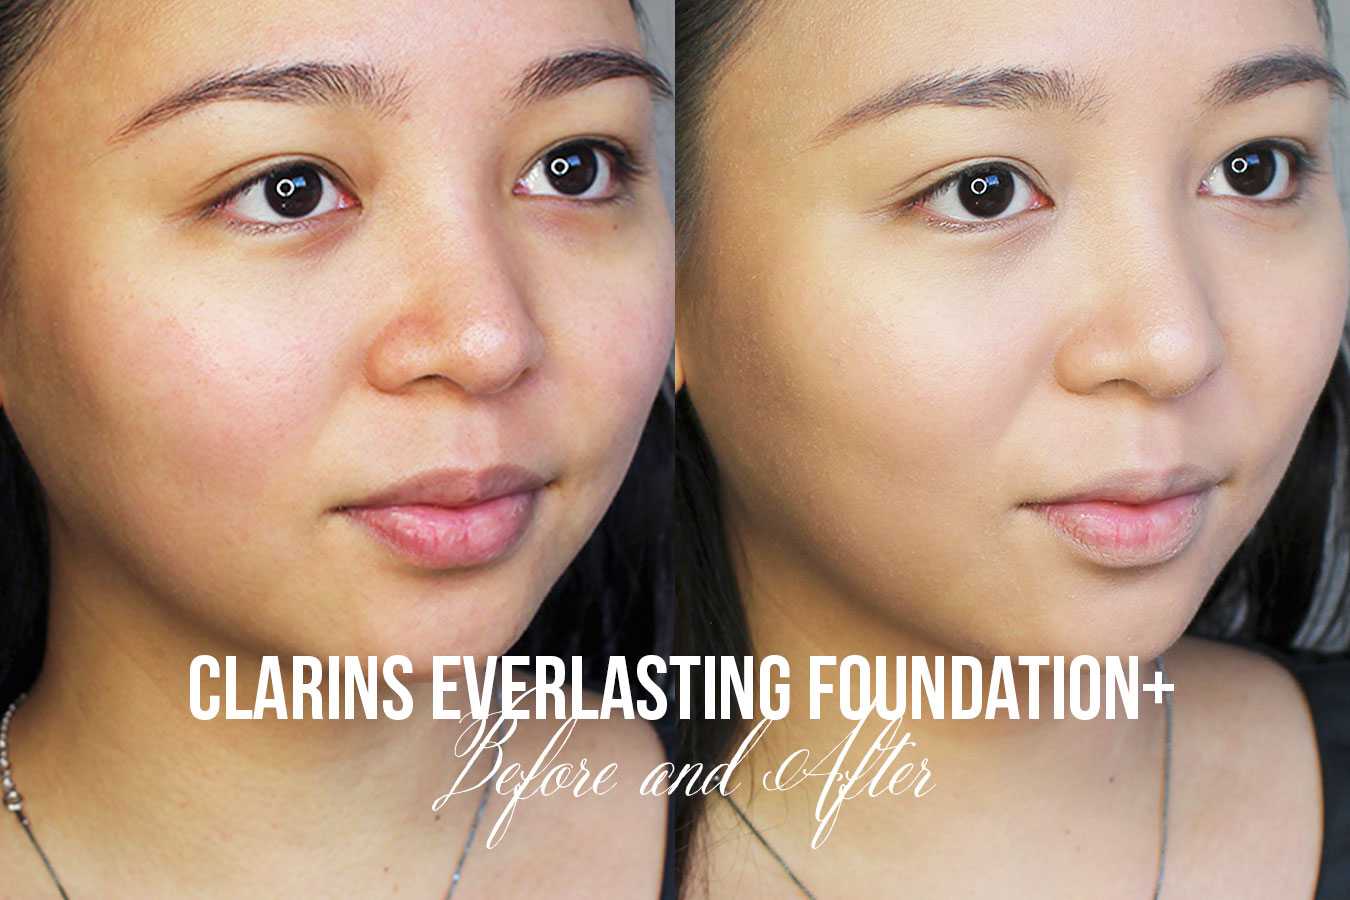 Clarins Everlasting Foundation+ Review Amber